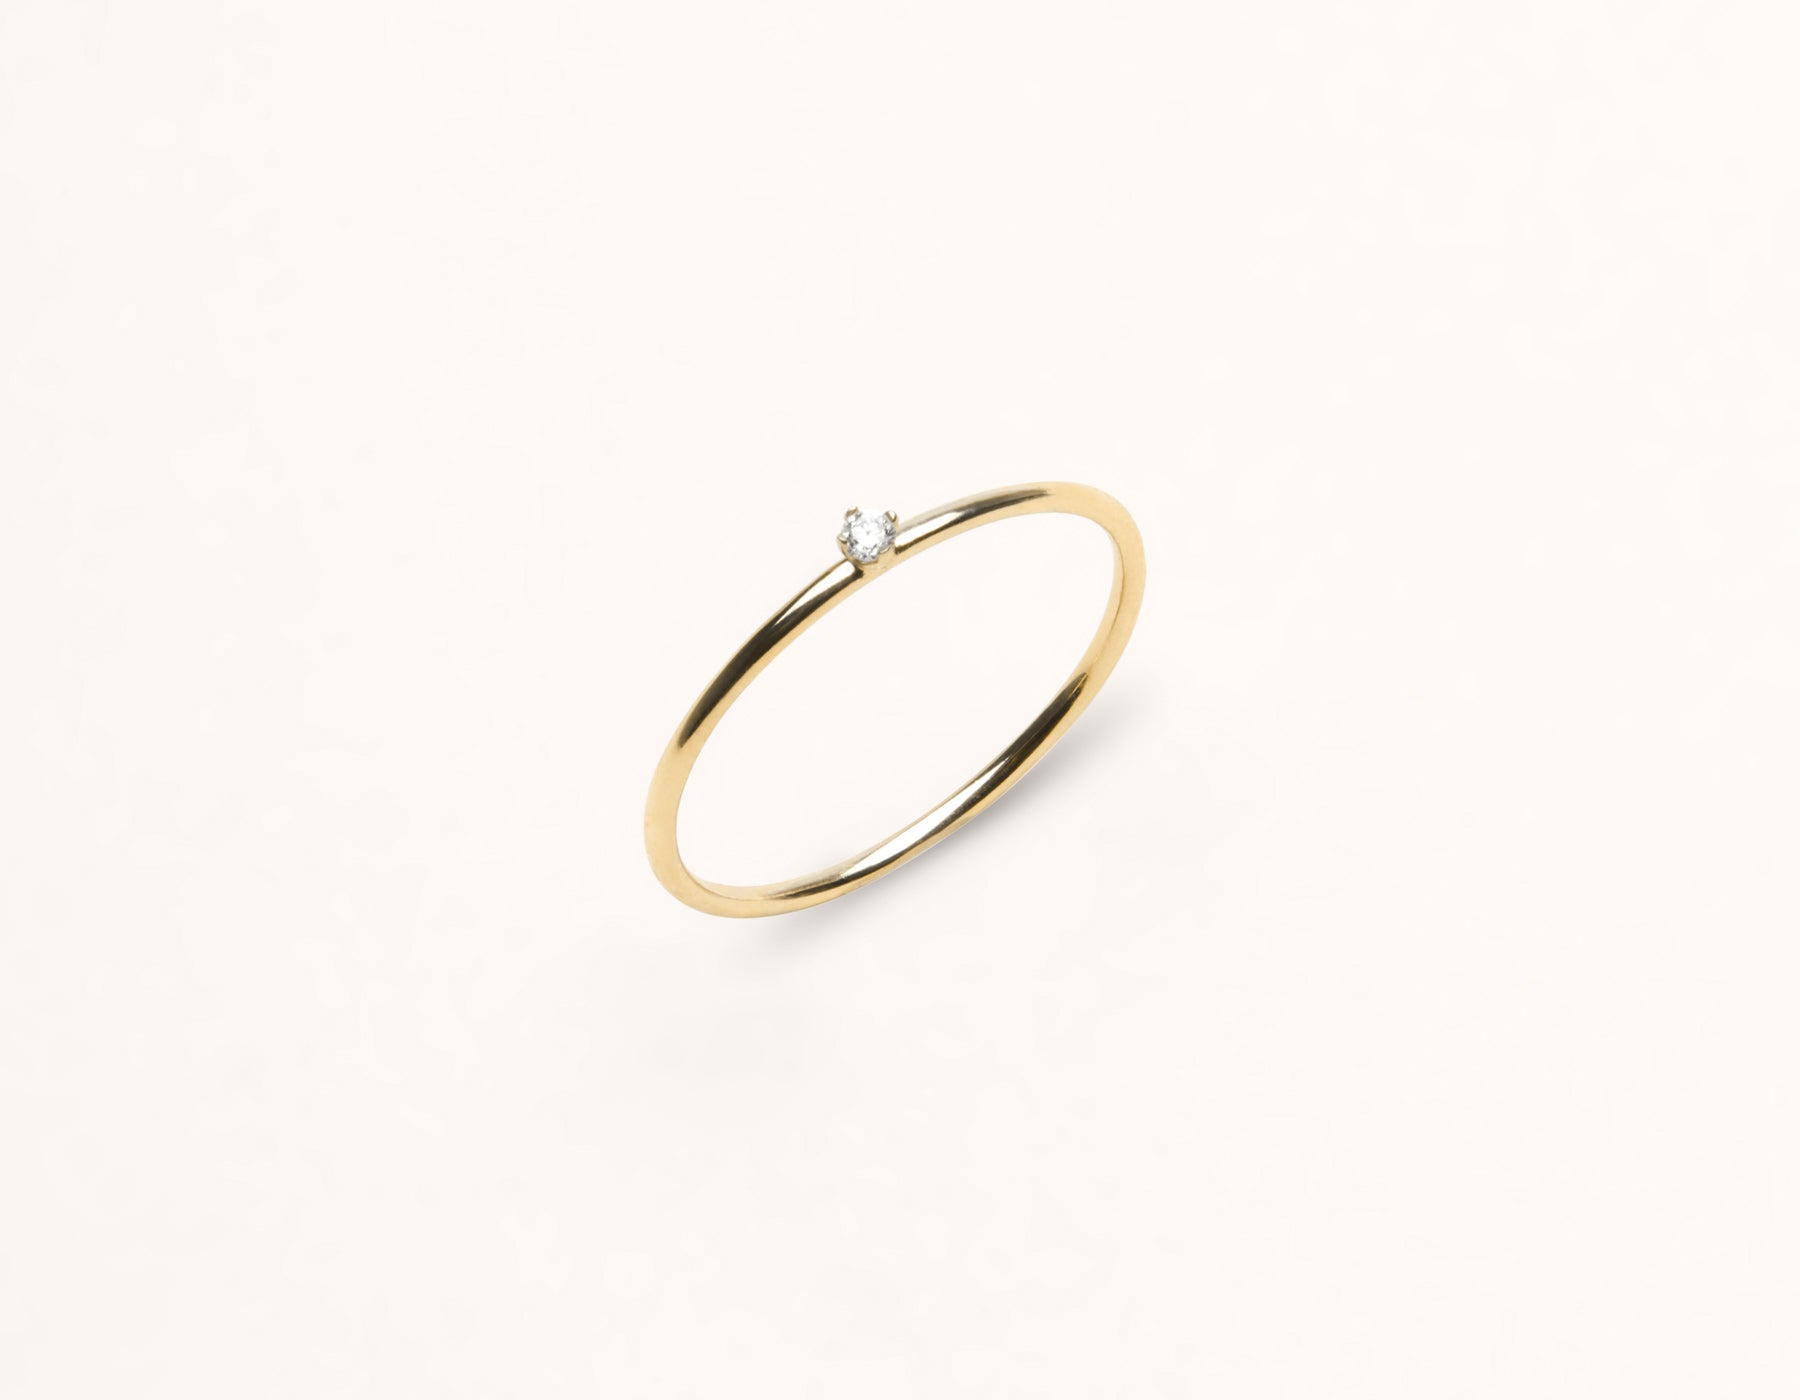 Simple modern 14k solid gold Round Diamond stacking ring by Vrai & Oro, 14K Yellow Gold